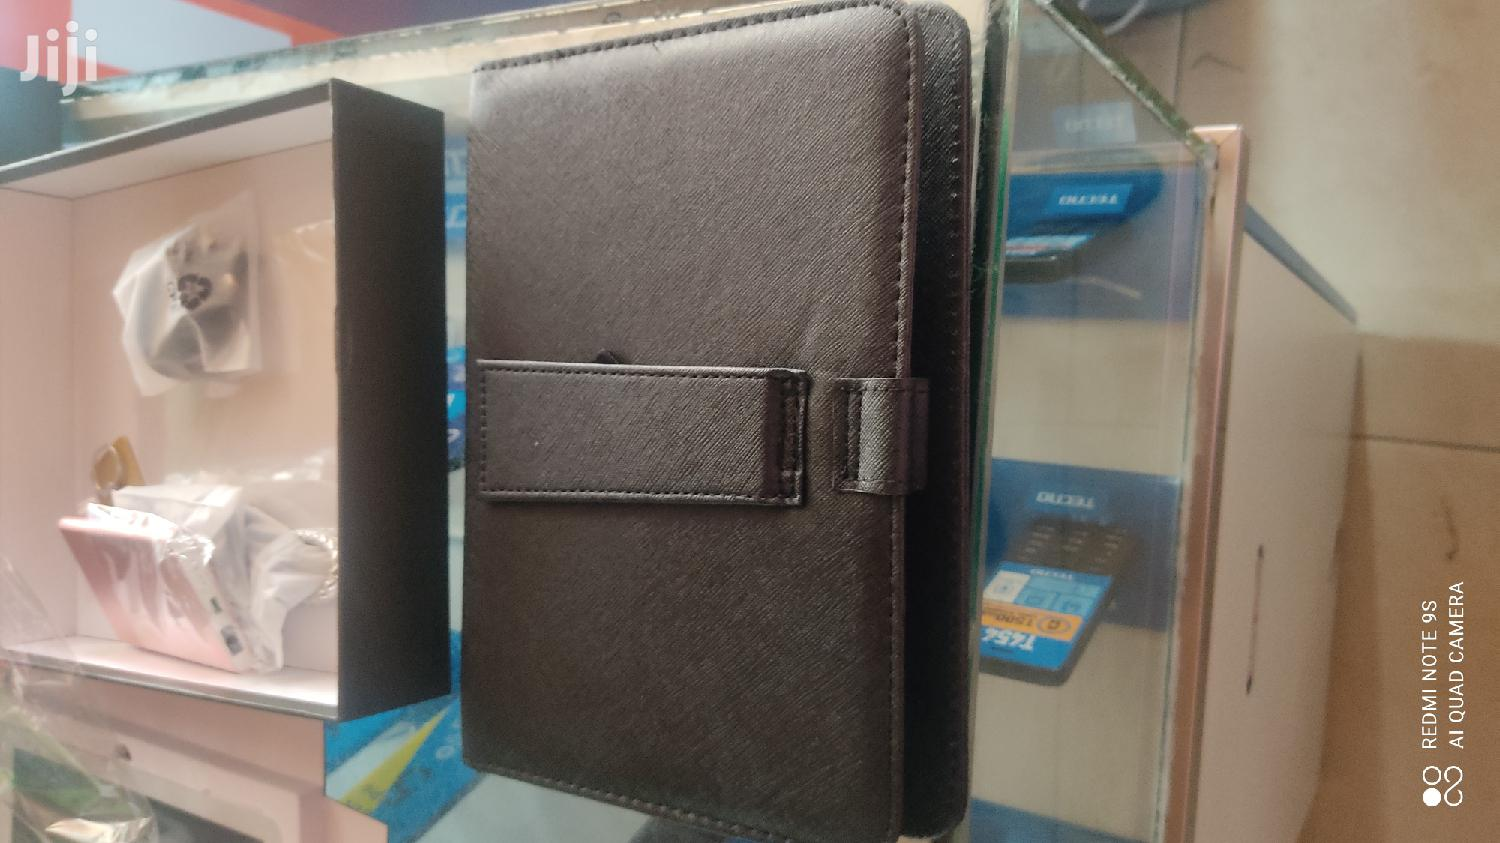 New Discover Note 8 Plus 64 GB | Tablets for sale in Dansoman, Greater Accra, Ghana